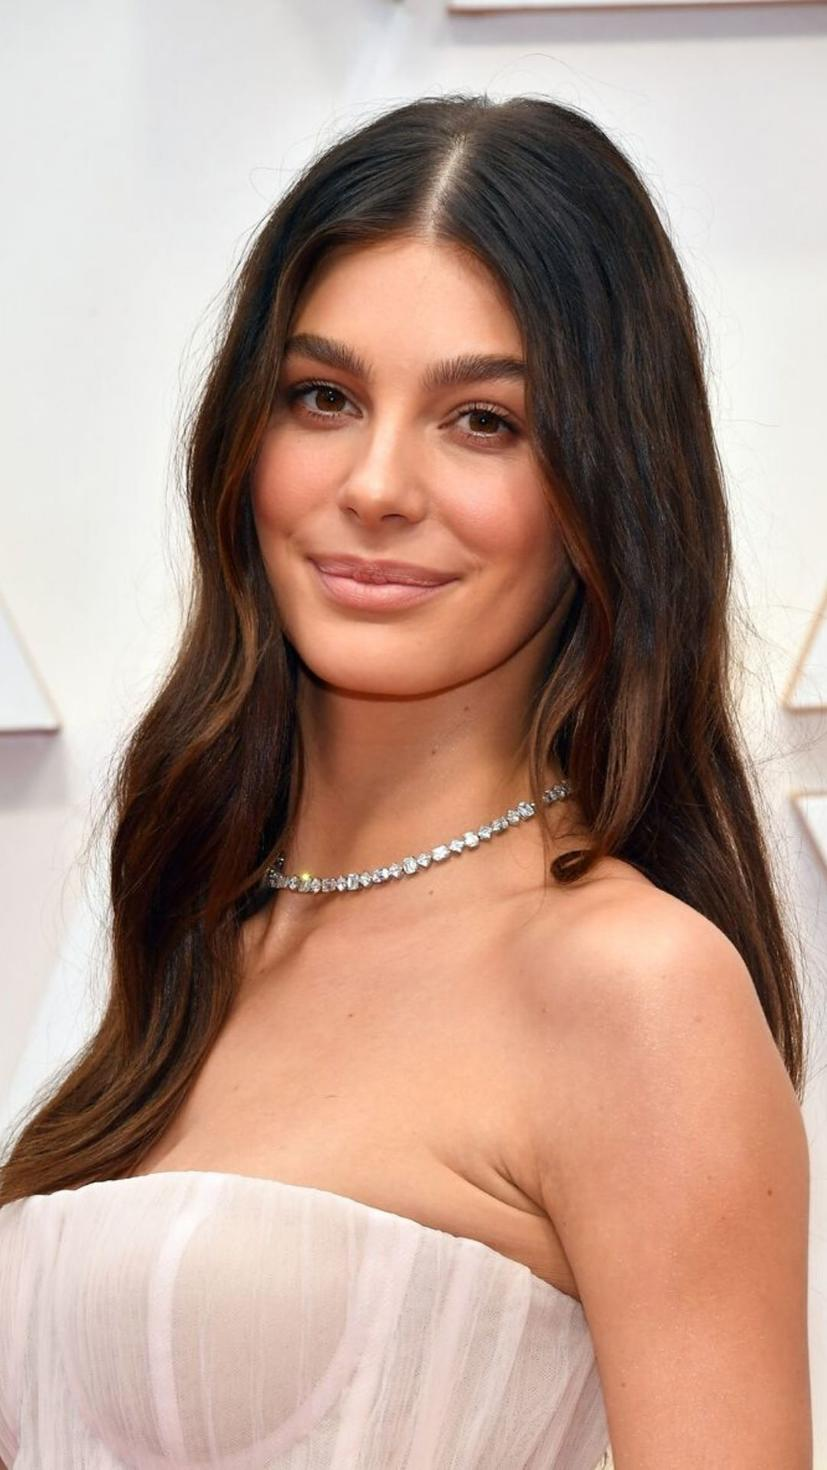 A simple, yet effective look highlighted Camila Morrone's natural beauty. She can really rock a nude makeup palette! Her effortlessly gorgeous hair was a head-turner at the Oscars!